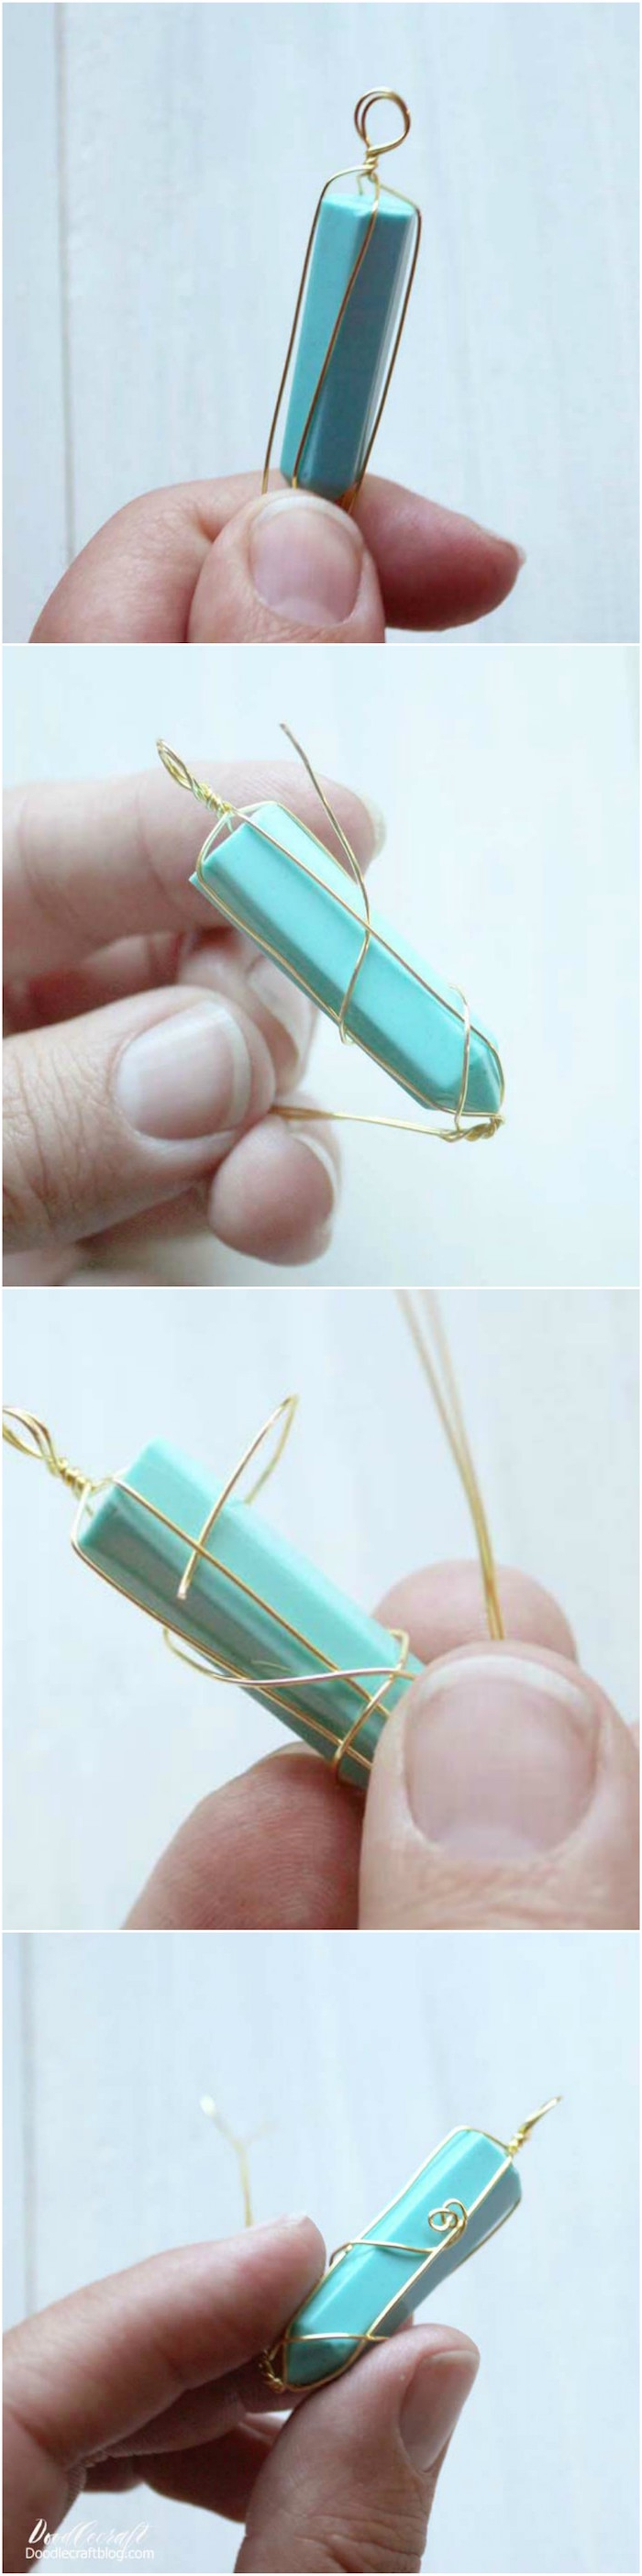 four step tutorial for faux crystal necklace pendant resin necklace step by step diy tutorial